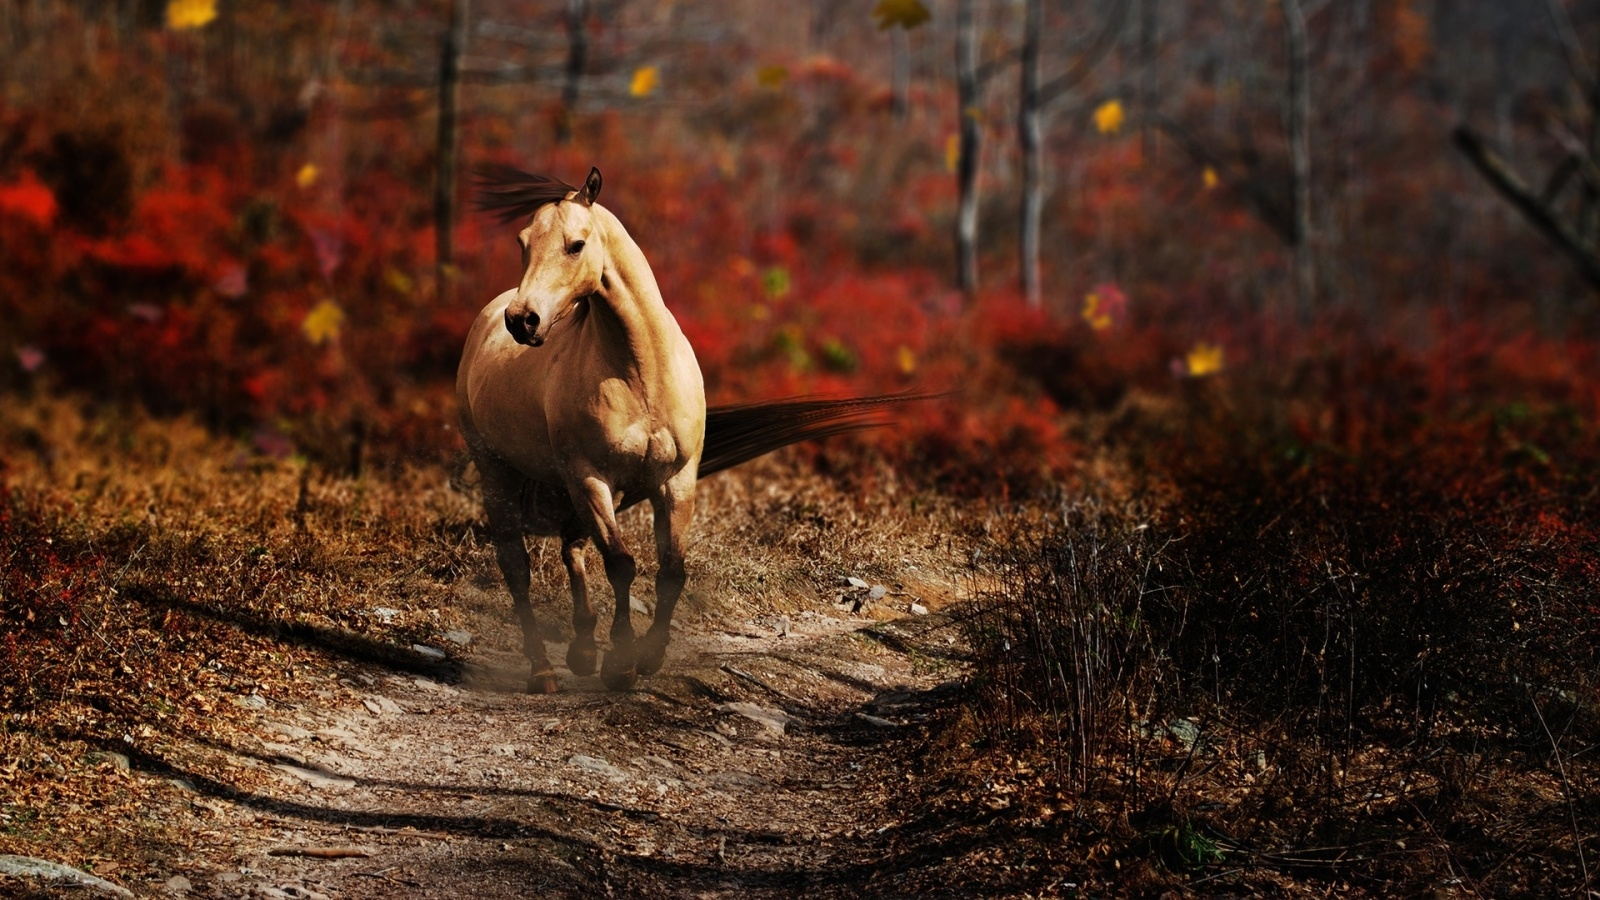 fighting wallpaper latest horse wallpaper awesome horse wallpaper pair 1600x900